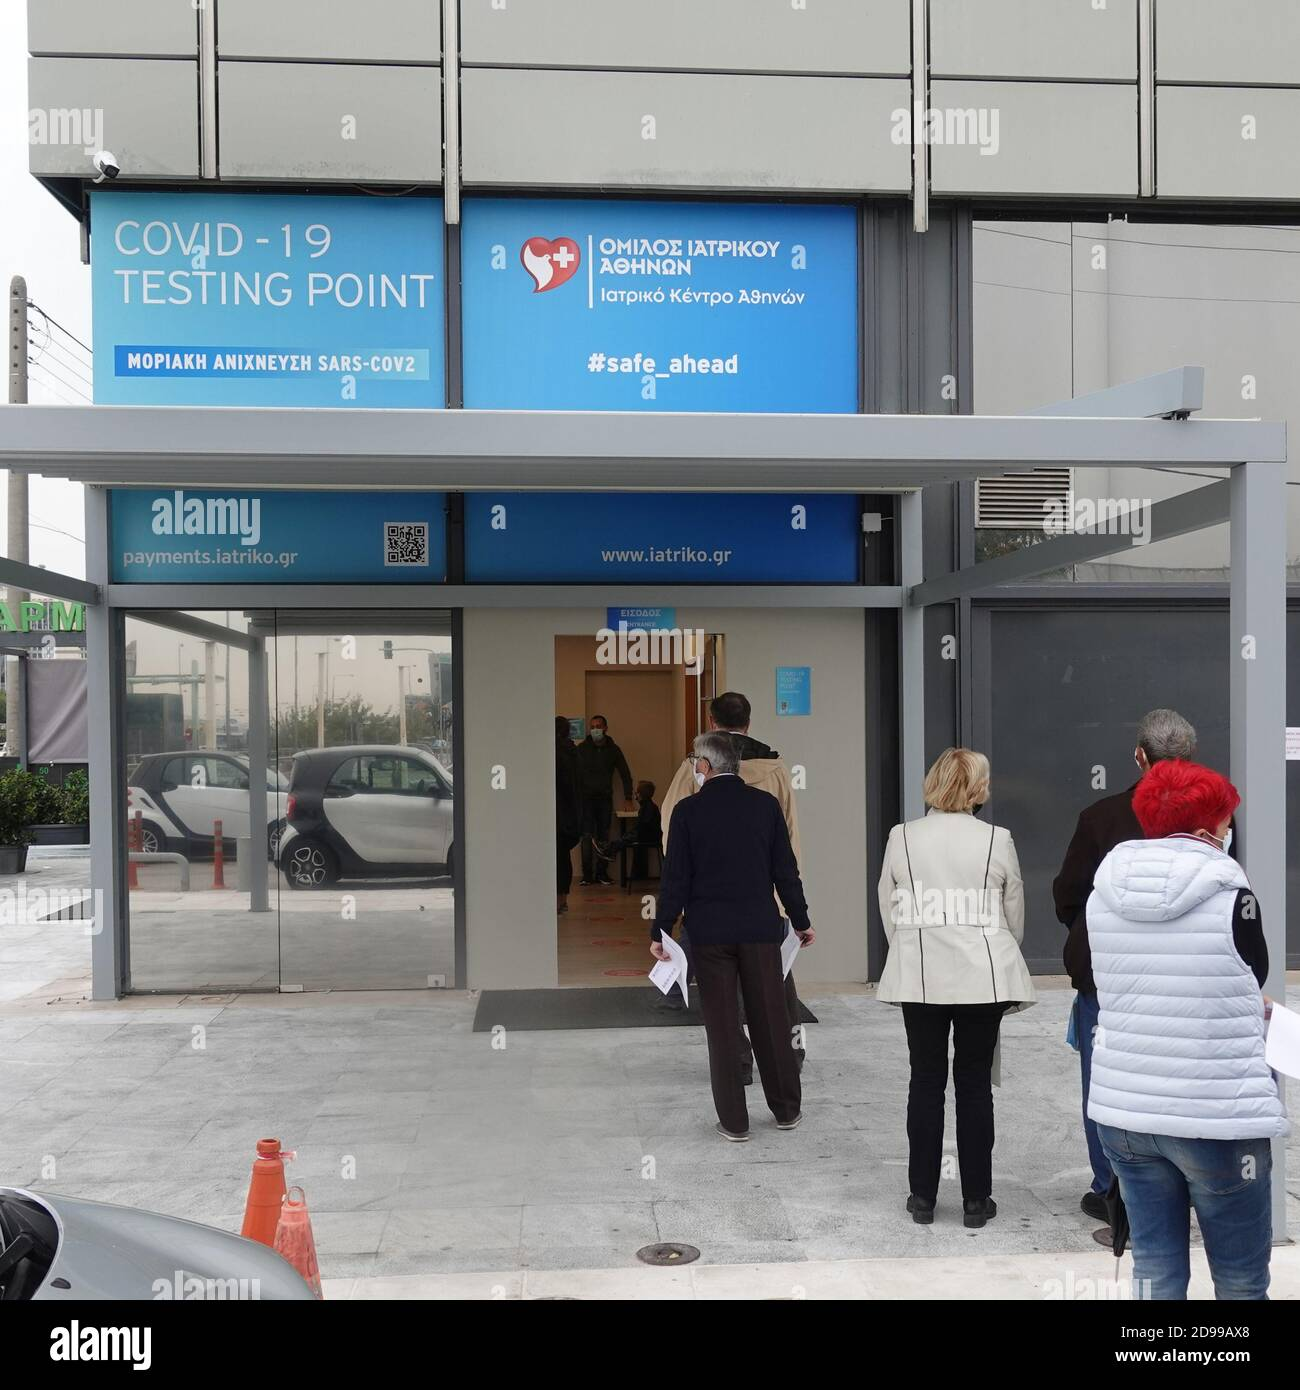 Athens, Greece - November 3, 2020: People waiting at the entrance of covid-19 molecular detection testing site during the second wave of the coronavir Stock Photo